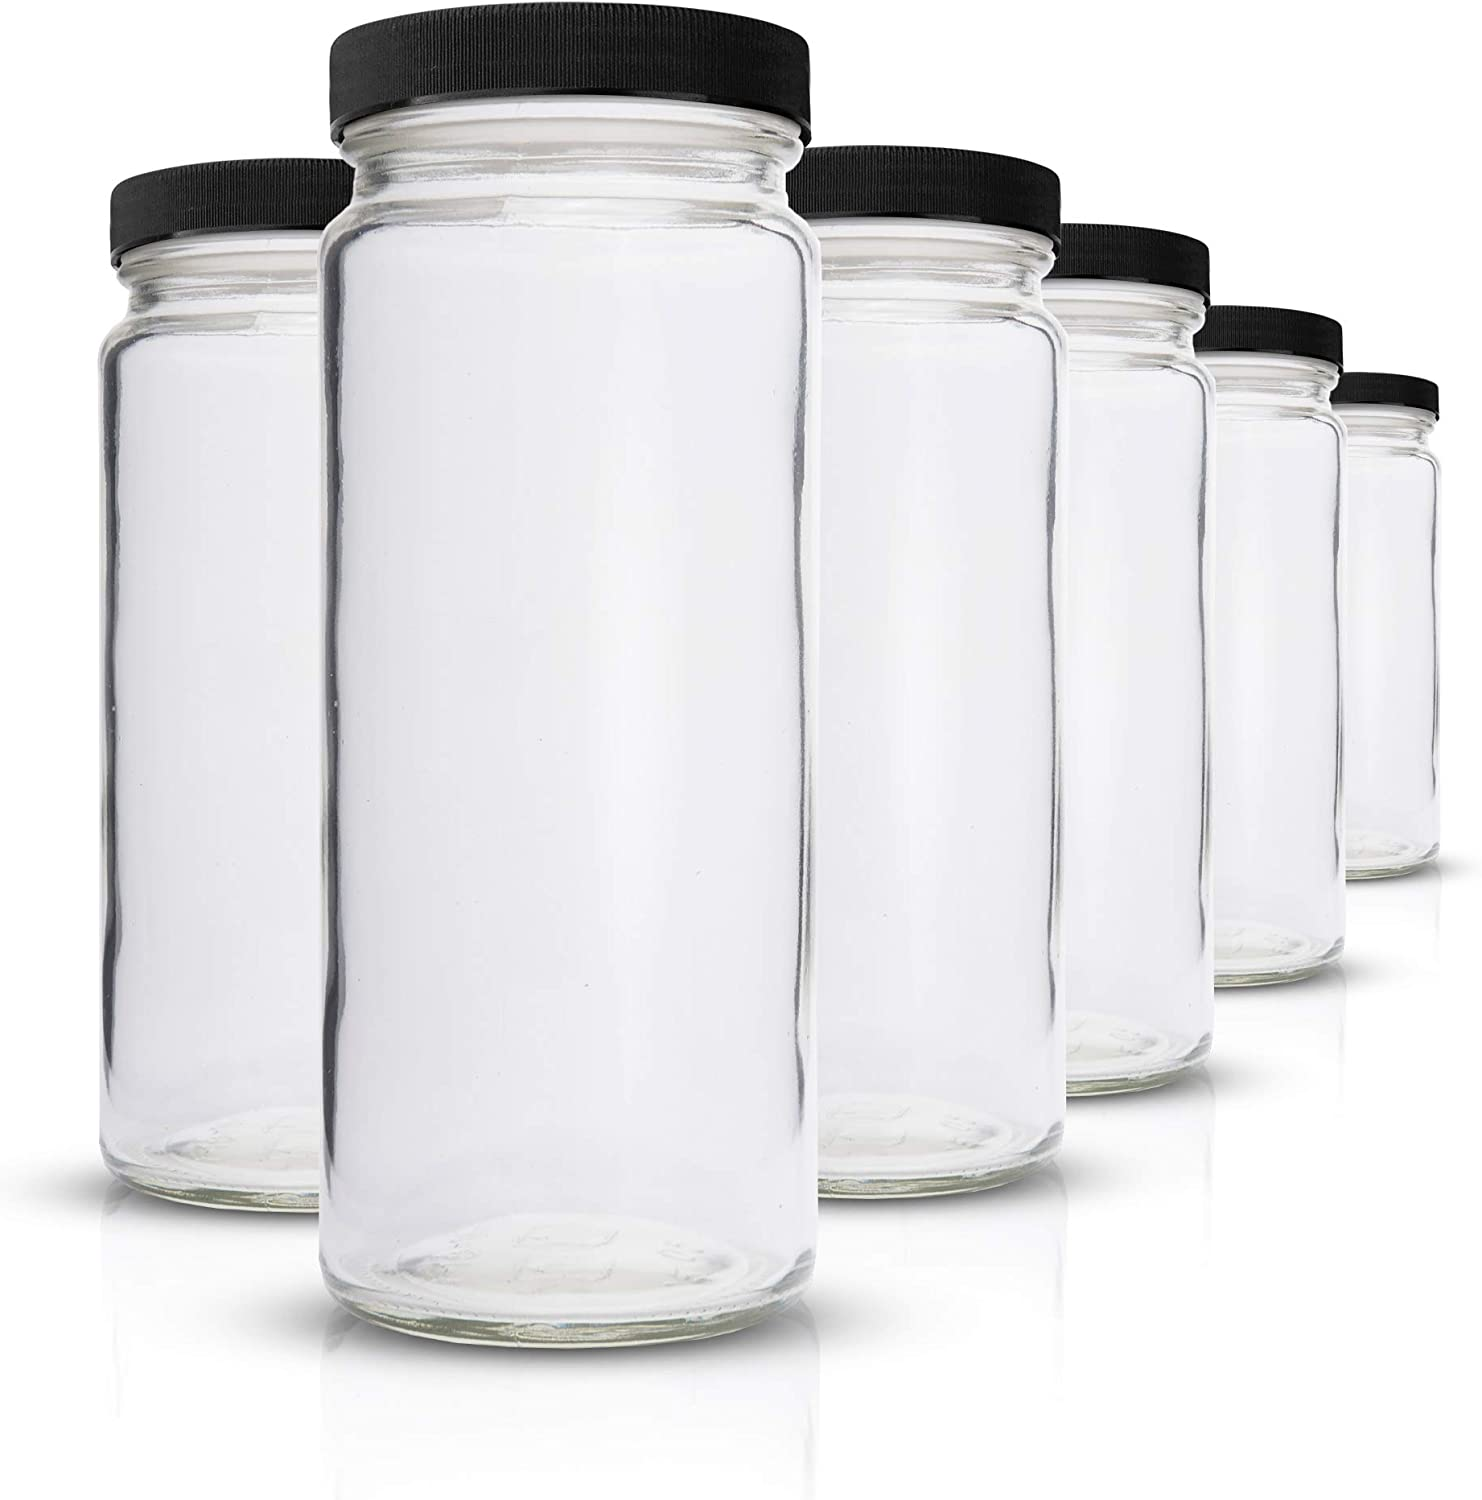 Glass Water Bottles Set - 6 Pack Wide Mouth with Lids for Juice, Smoothies, Beverage Storage - 16 oz, Durable, Eco Friendly & BPA Free - Reusable, Dishwasher Safe, Leak Proof, Clear, Black Caps